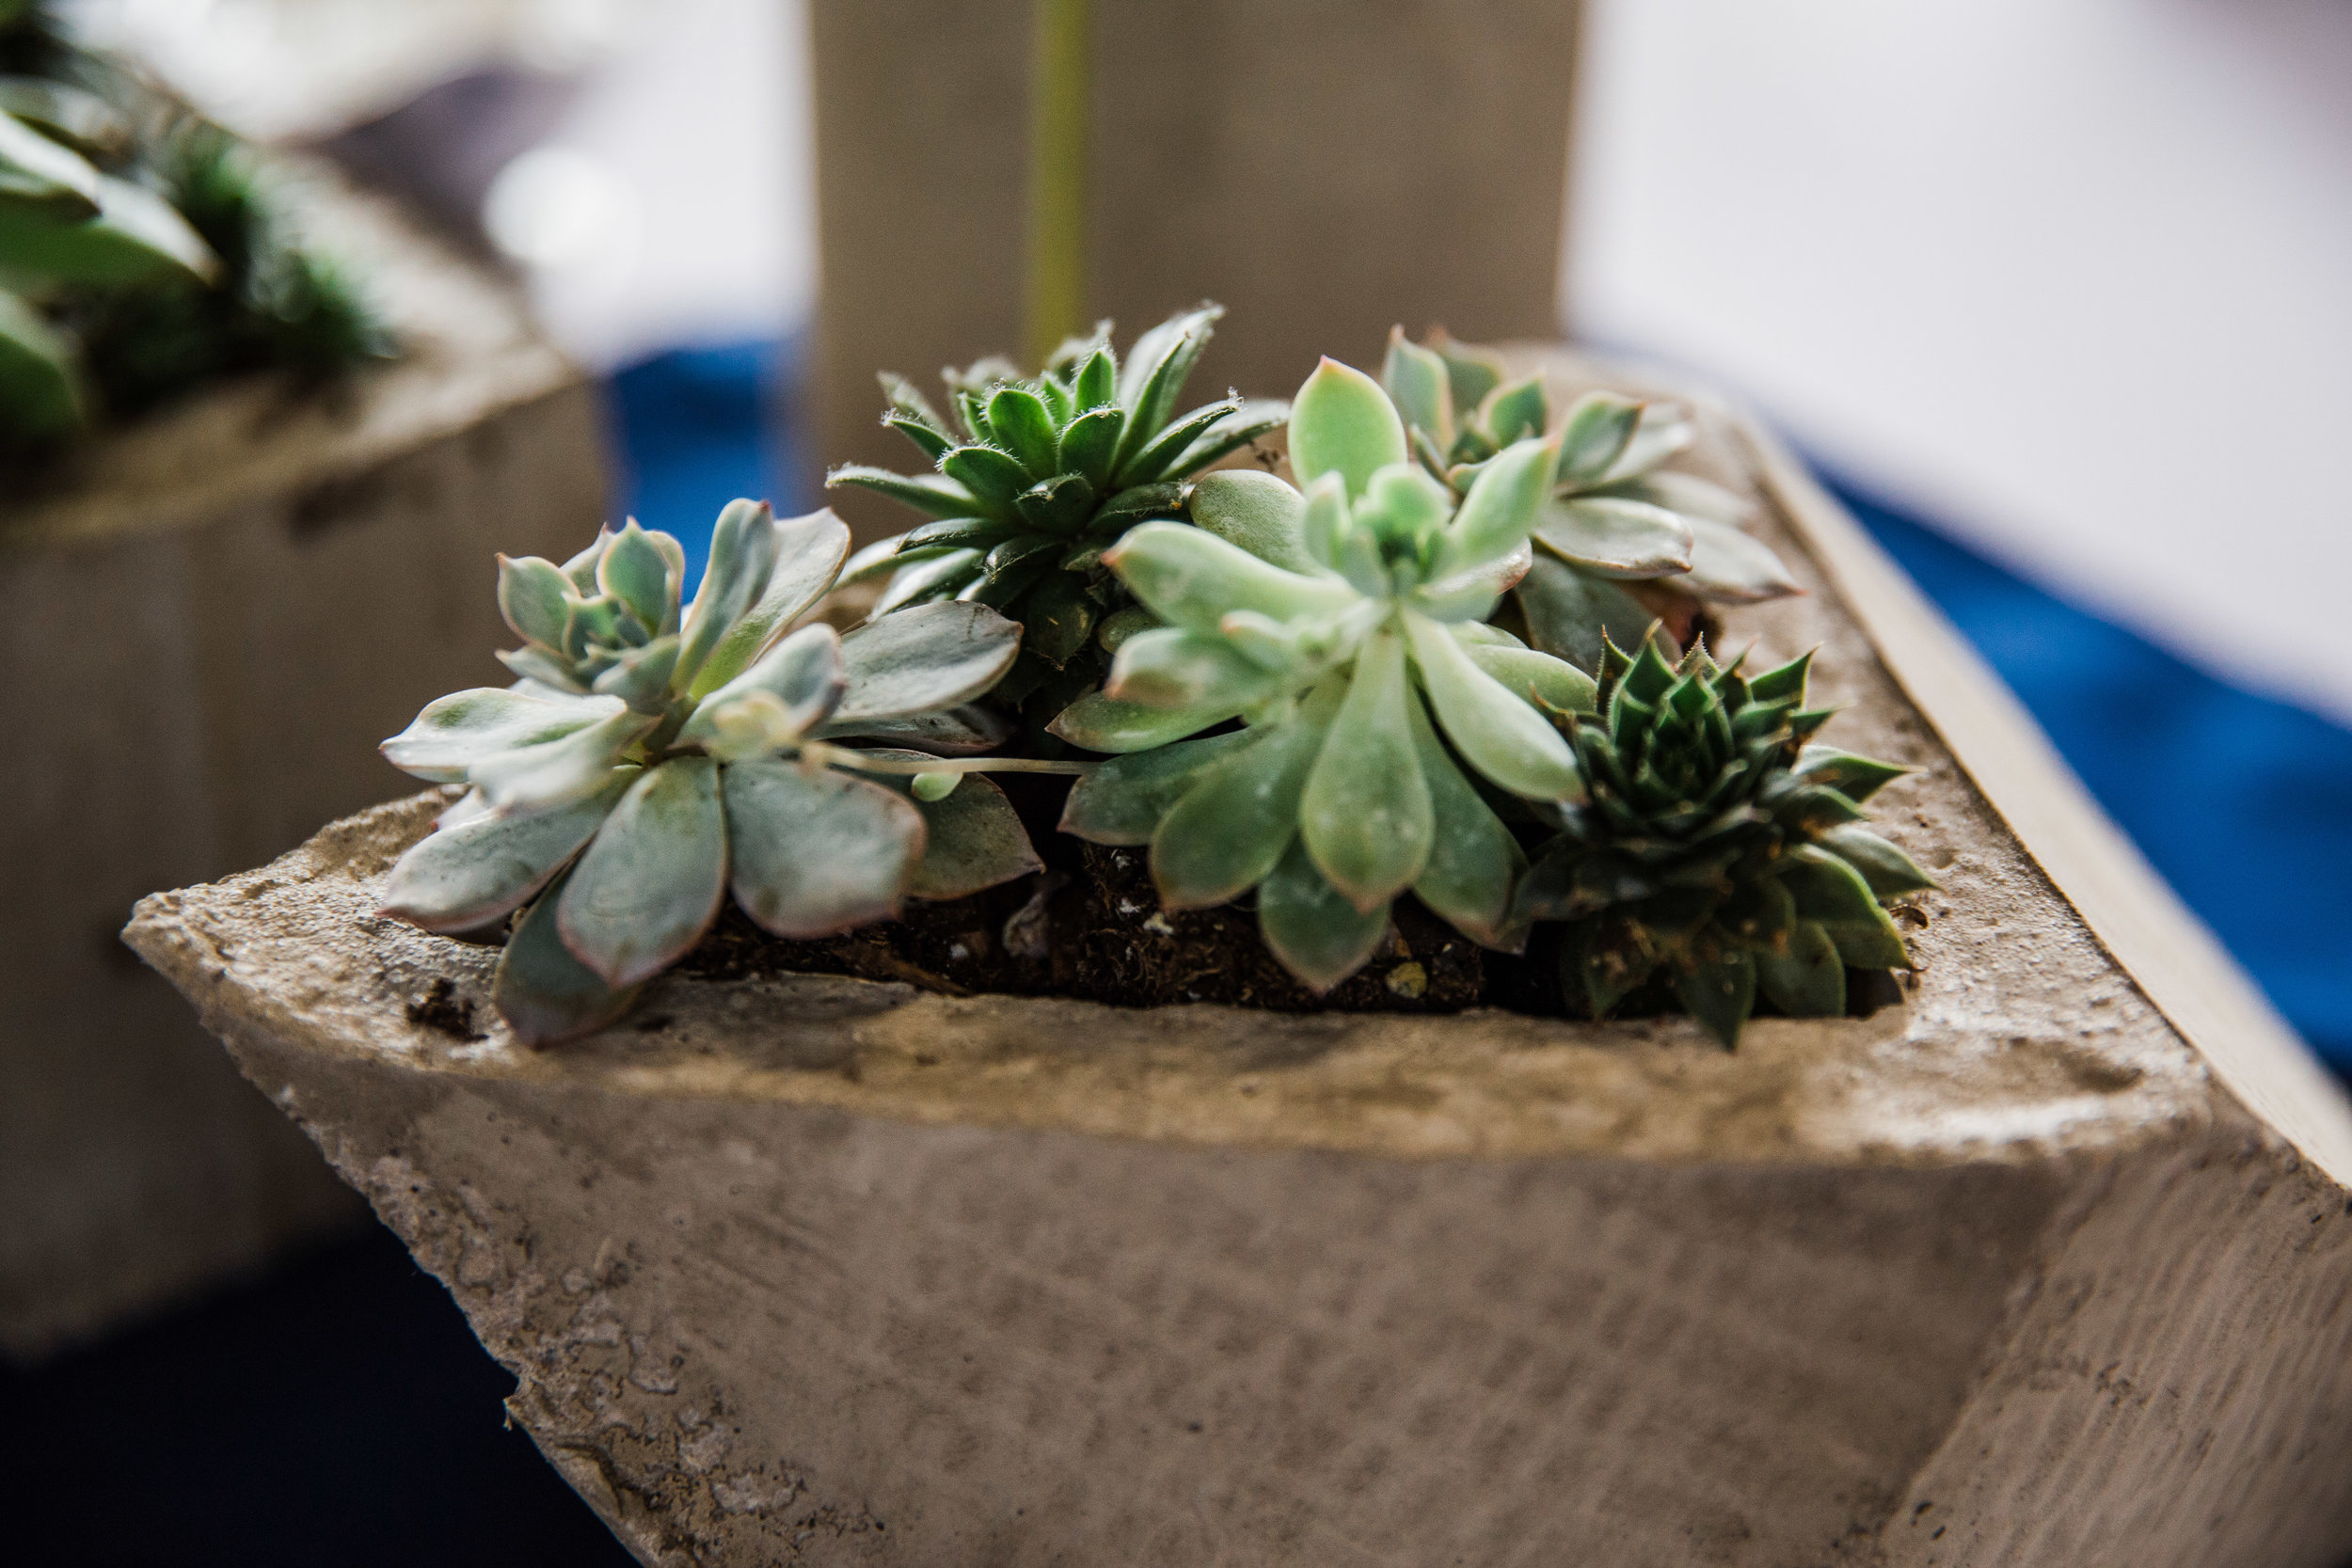 Michigan Wedding Details-Succulents_Tania Howard Photography.jpg